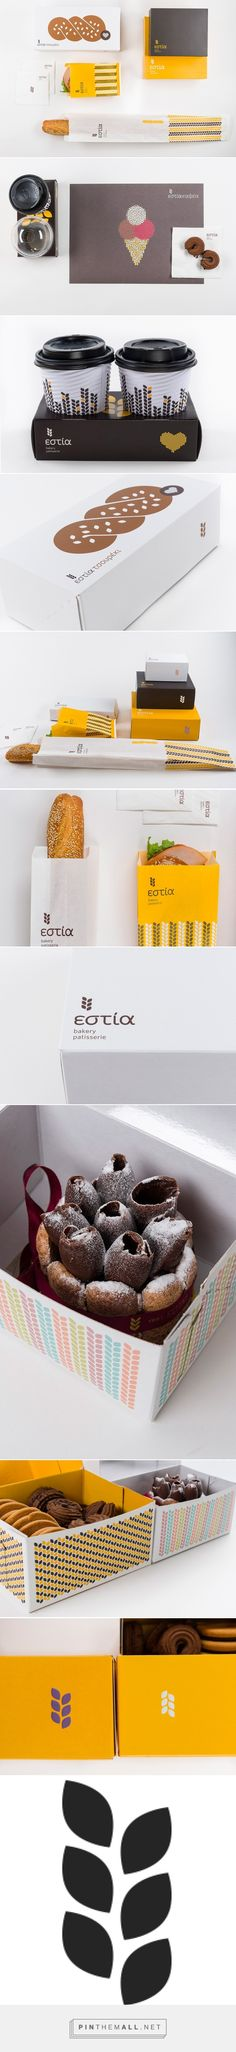 "Beetroot -+ Estia Bakery packaging curated by Packaging Diva PD. A simple wheat kernel shape was developed and utilized as a ""design kernel"" from which a variety of patterns and mosaic images where produced including the bakery's logo: a wheat stem."